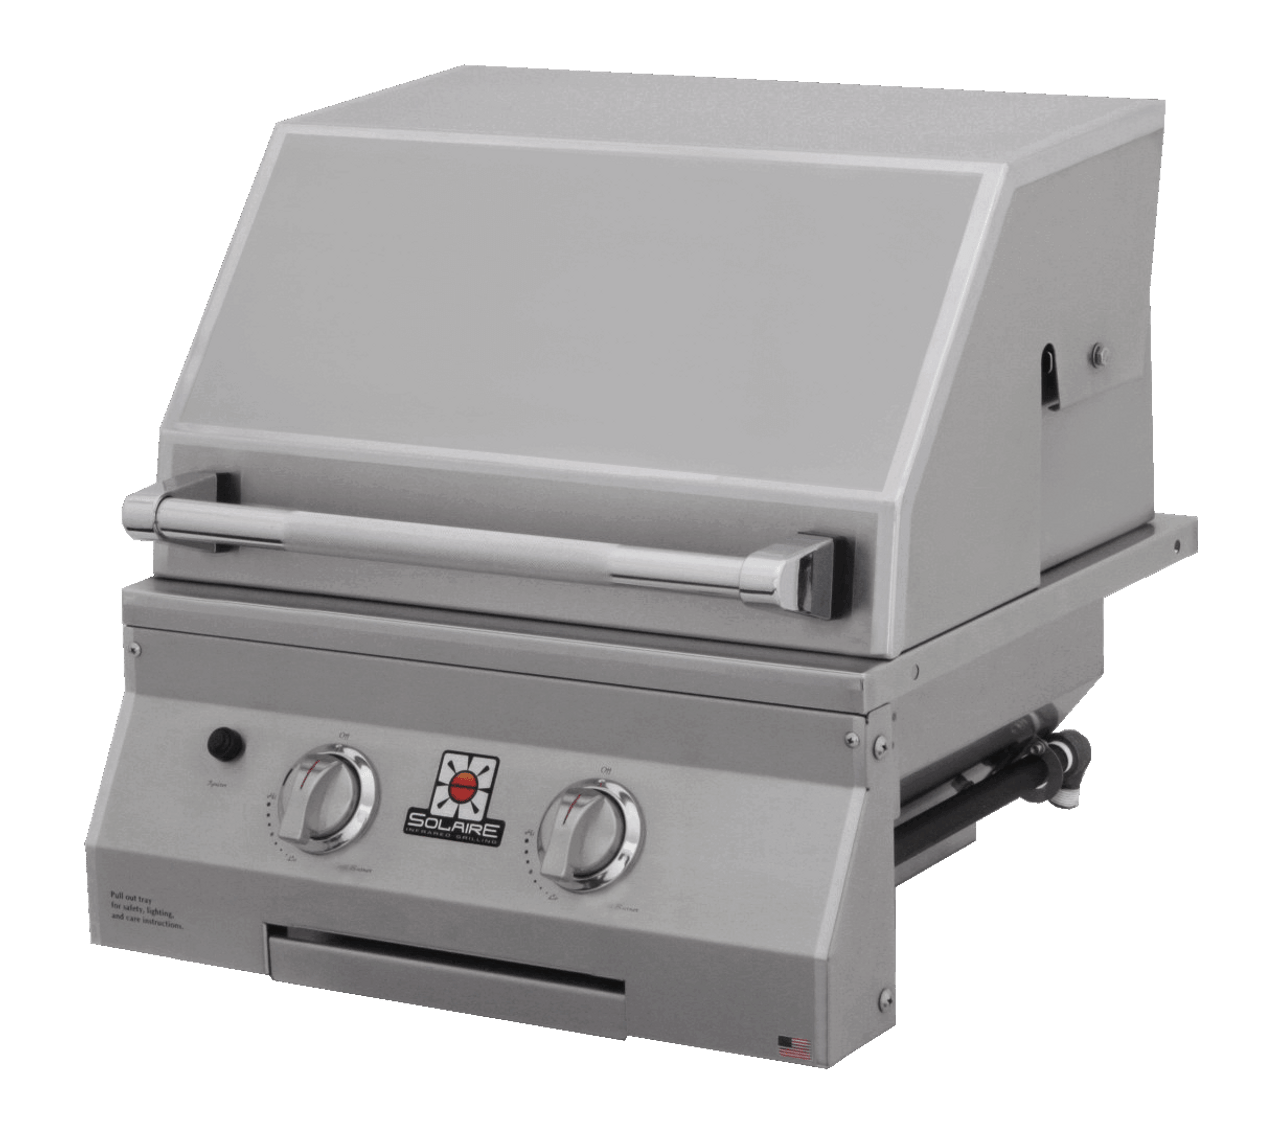 Solaire 21 Inch Grill, Built In, Front View, Hood Down